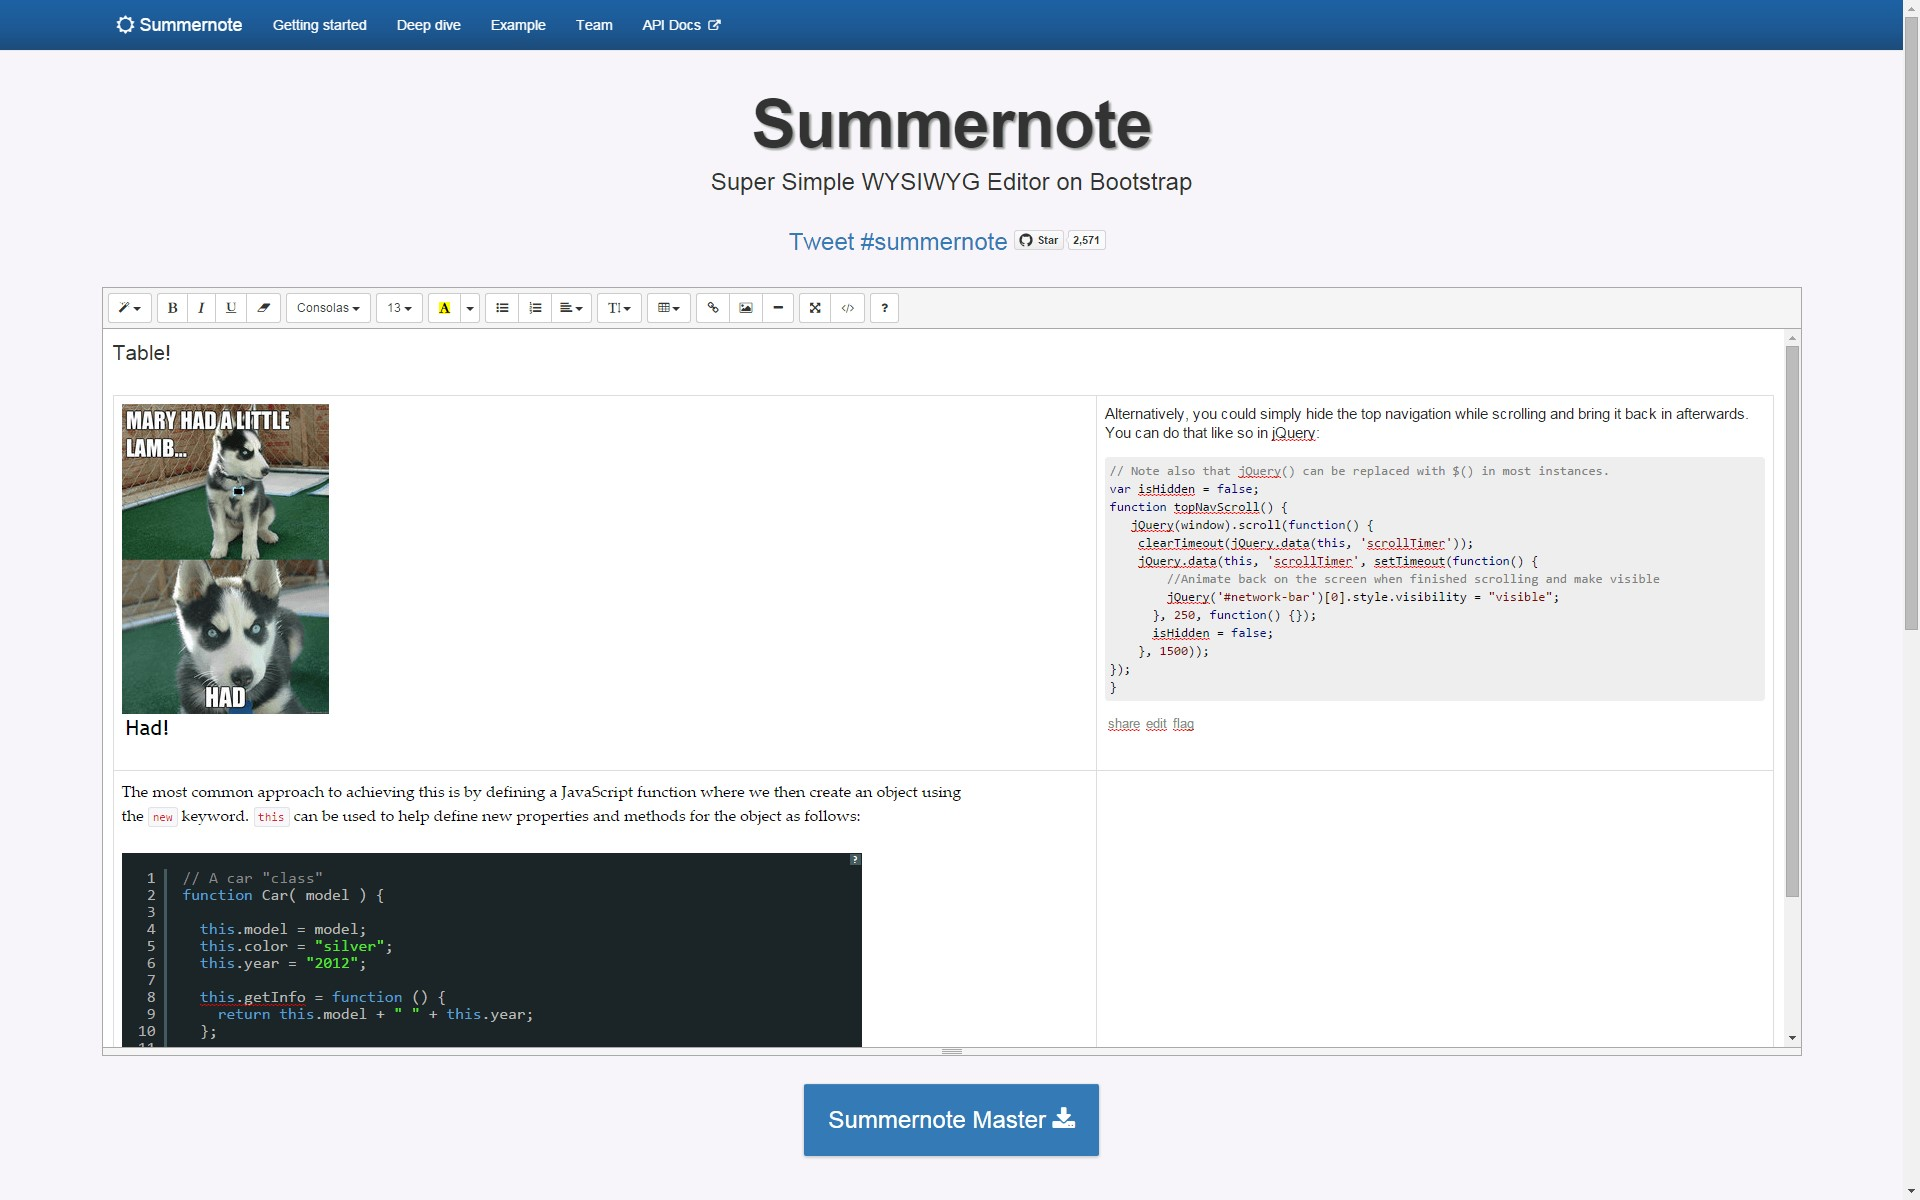 Summernote Alternatives and Similar Websites and Apps